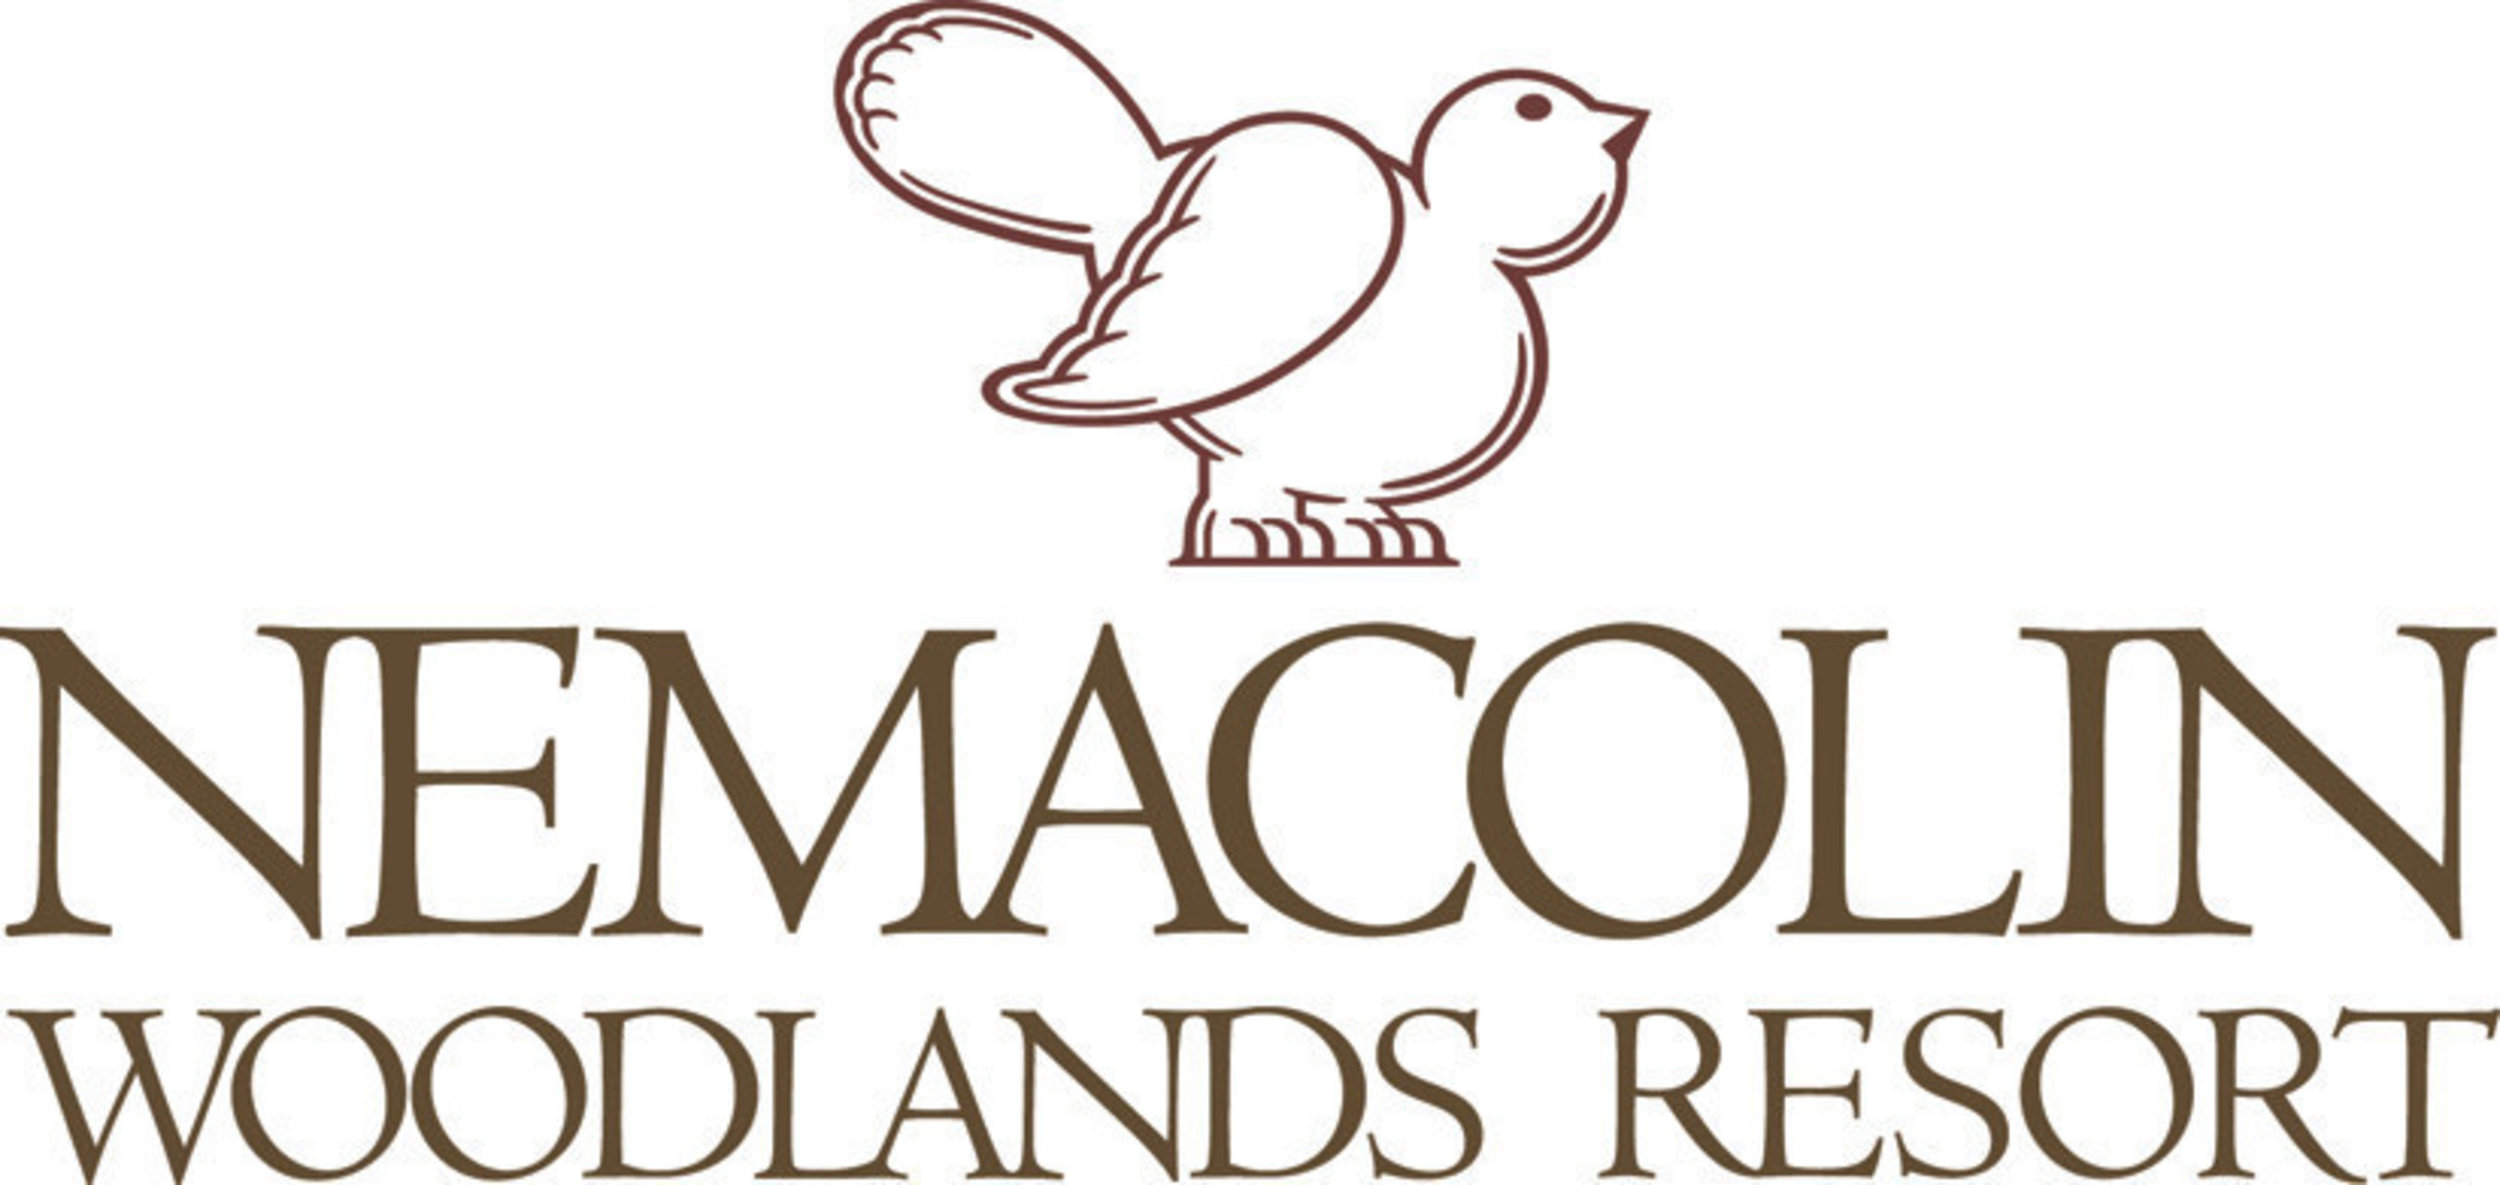 Nemacolin Woodlands Resort Logo.jpg